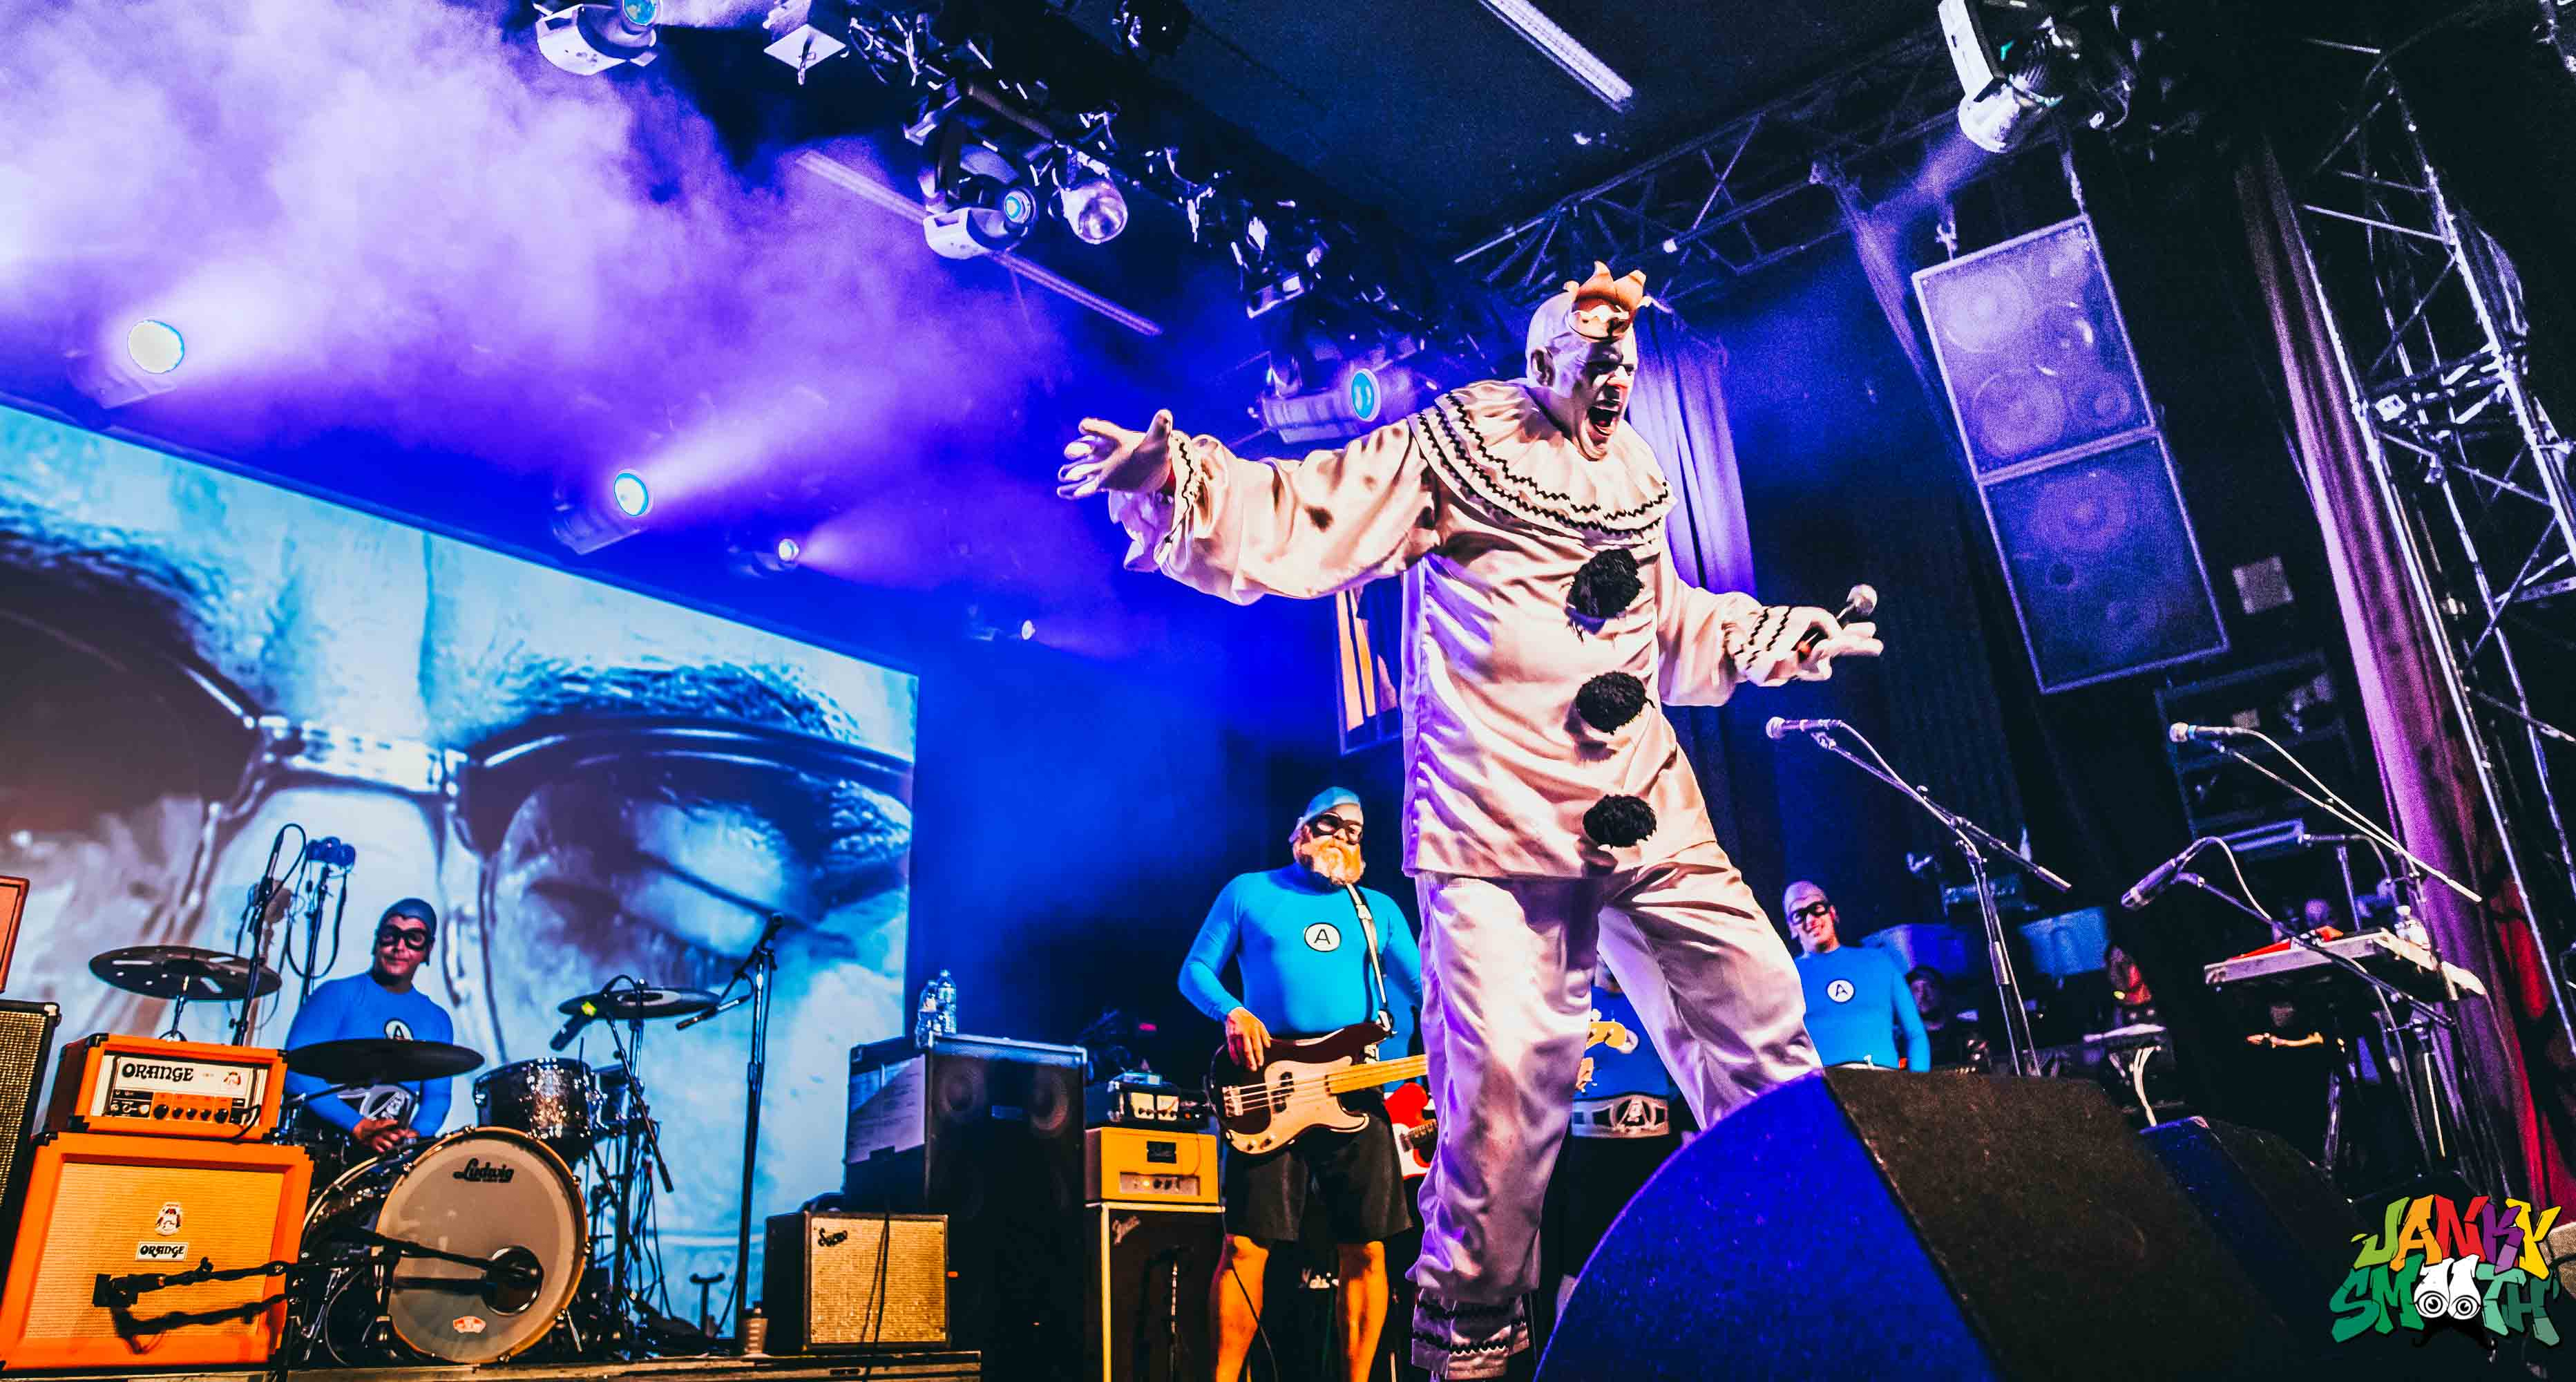 The Aquabats and Puddles Pity Party